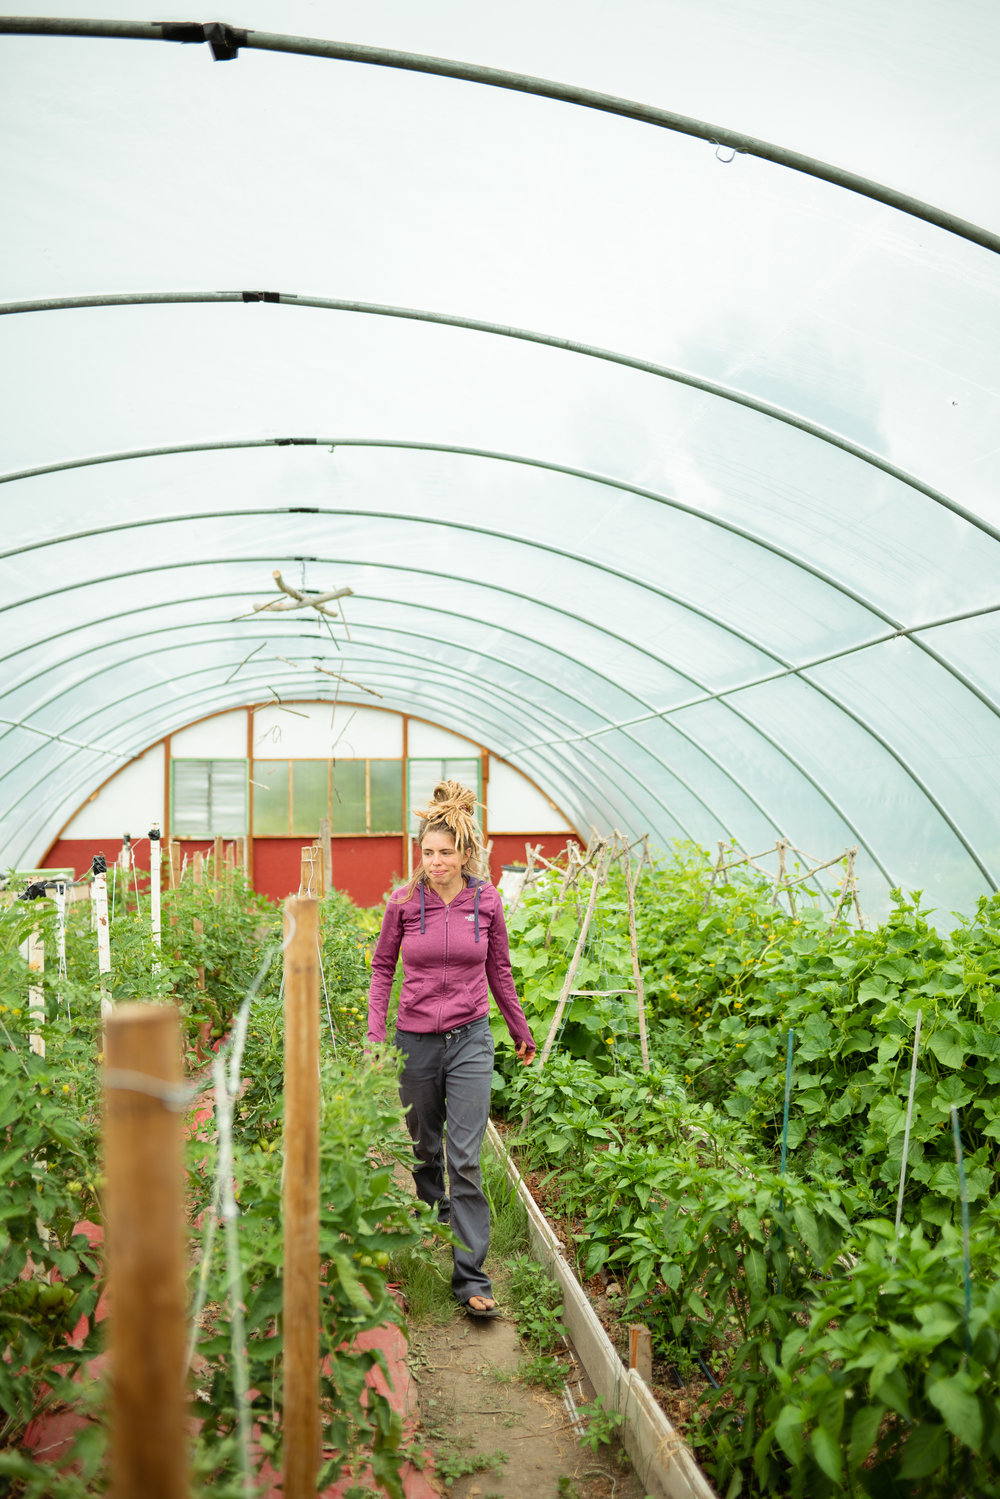 Kacy Senger surrounded by tomatoes at Sprig & Root Farm in Clarkston, Montana.